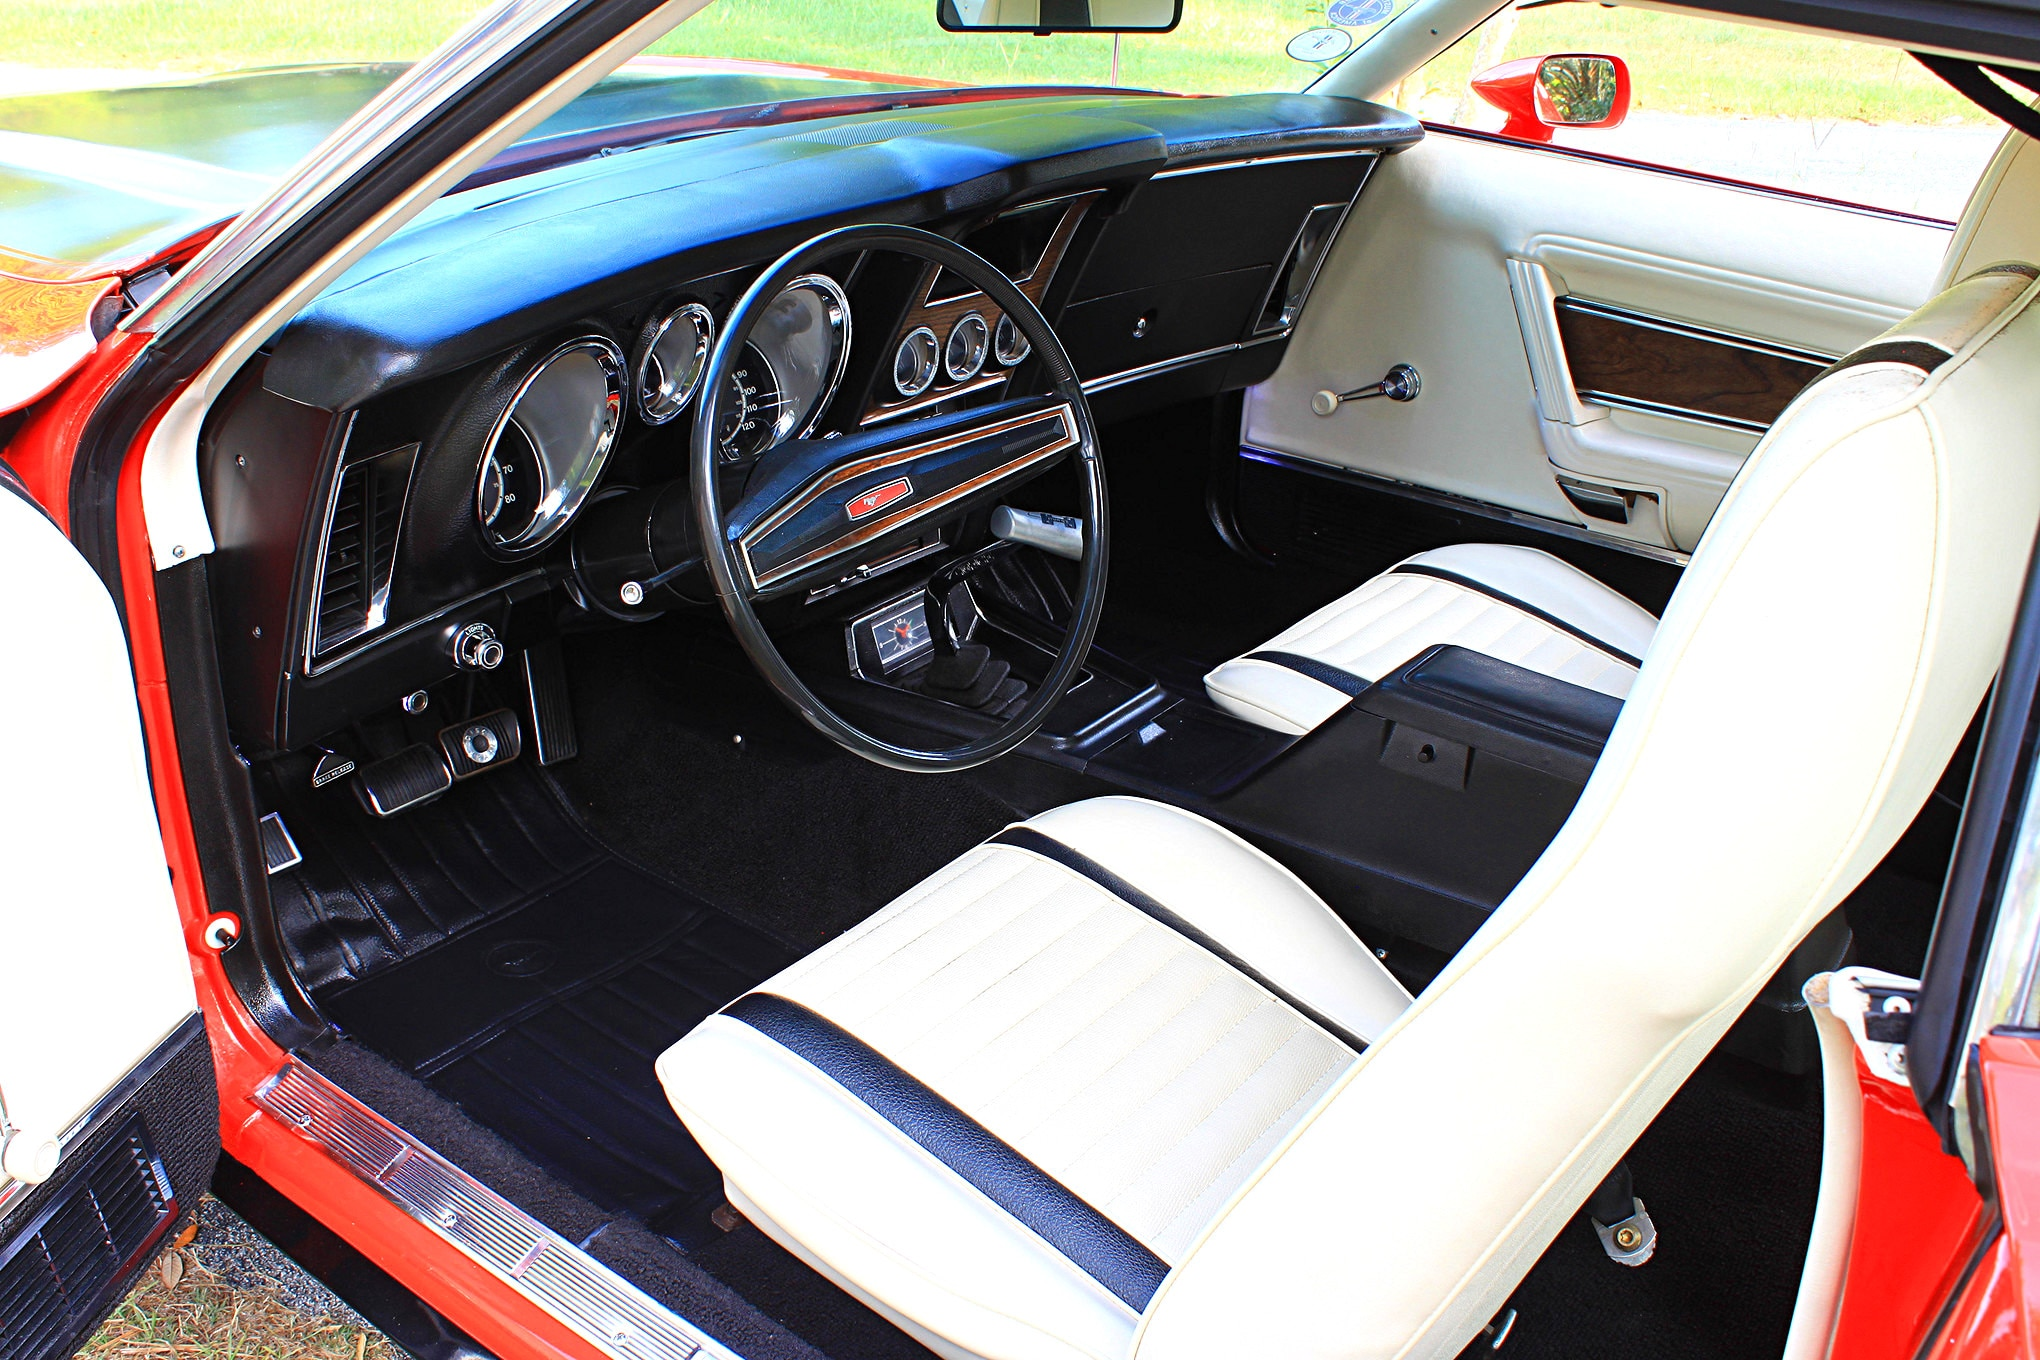 07 1971 ford mustang boss 351 red interior